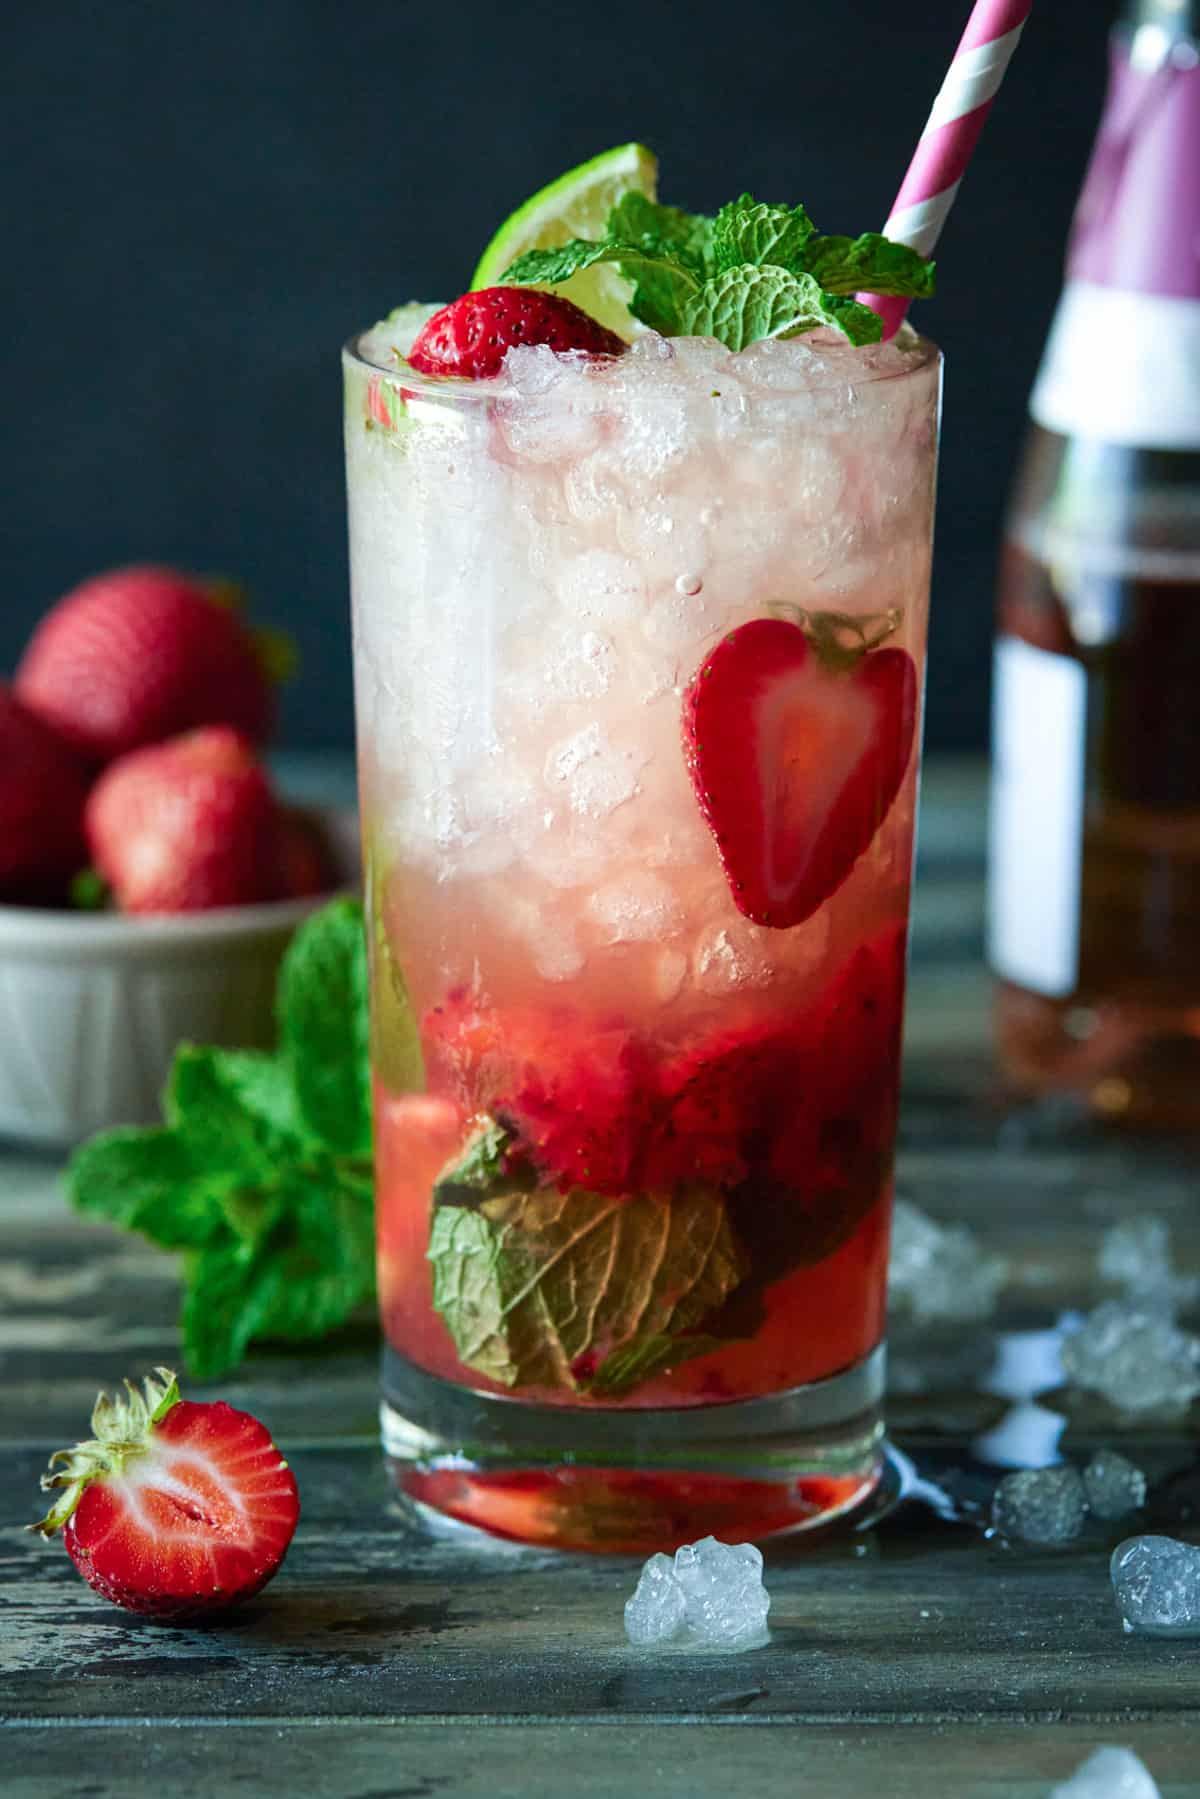 Highball glass filled with Strawberry Mojito. Garnished with limes, strawberries and mint leaves.